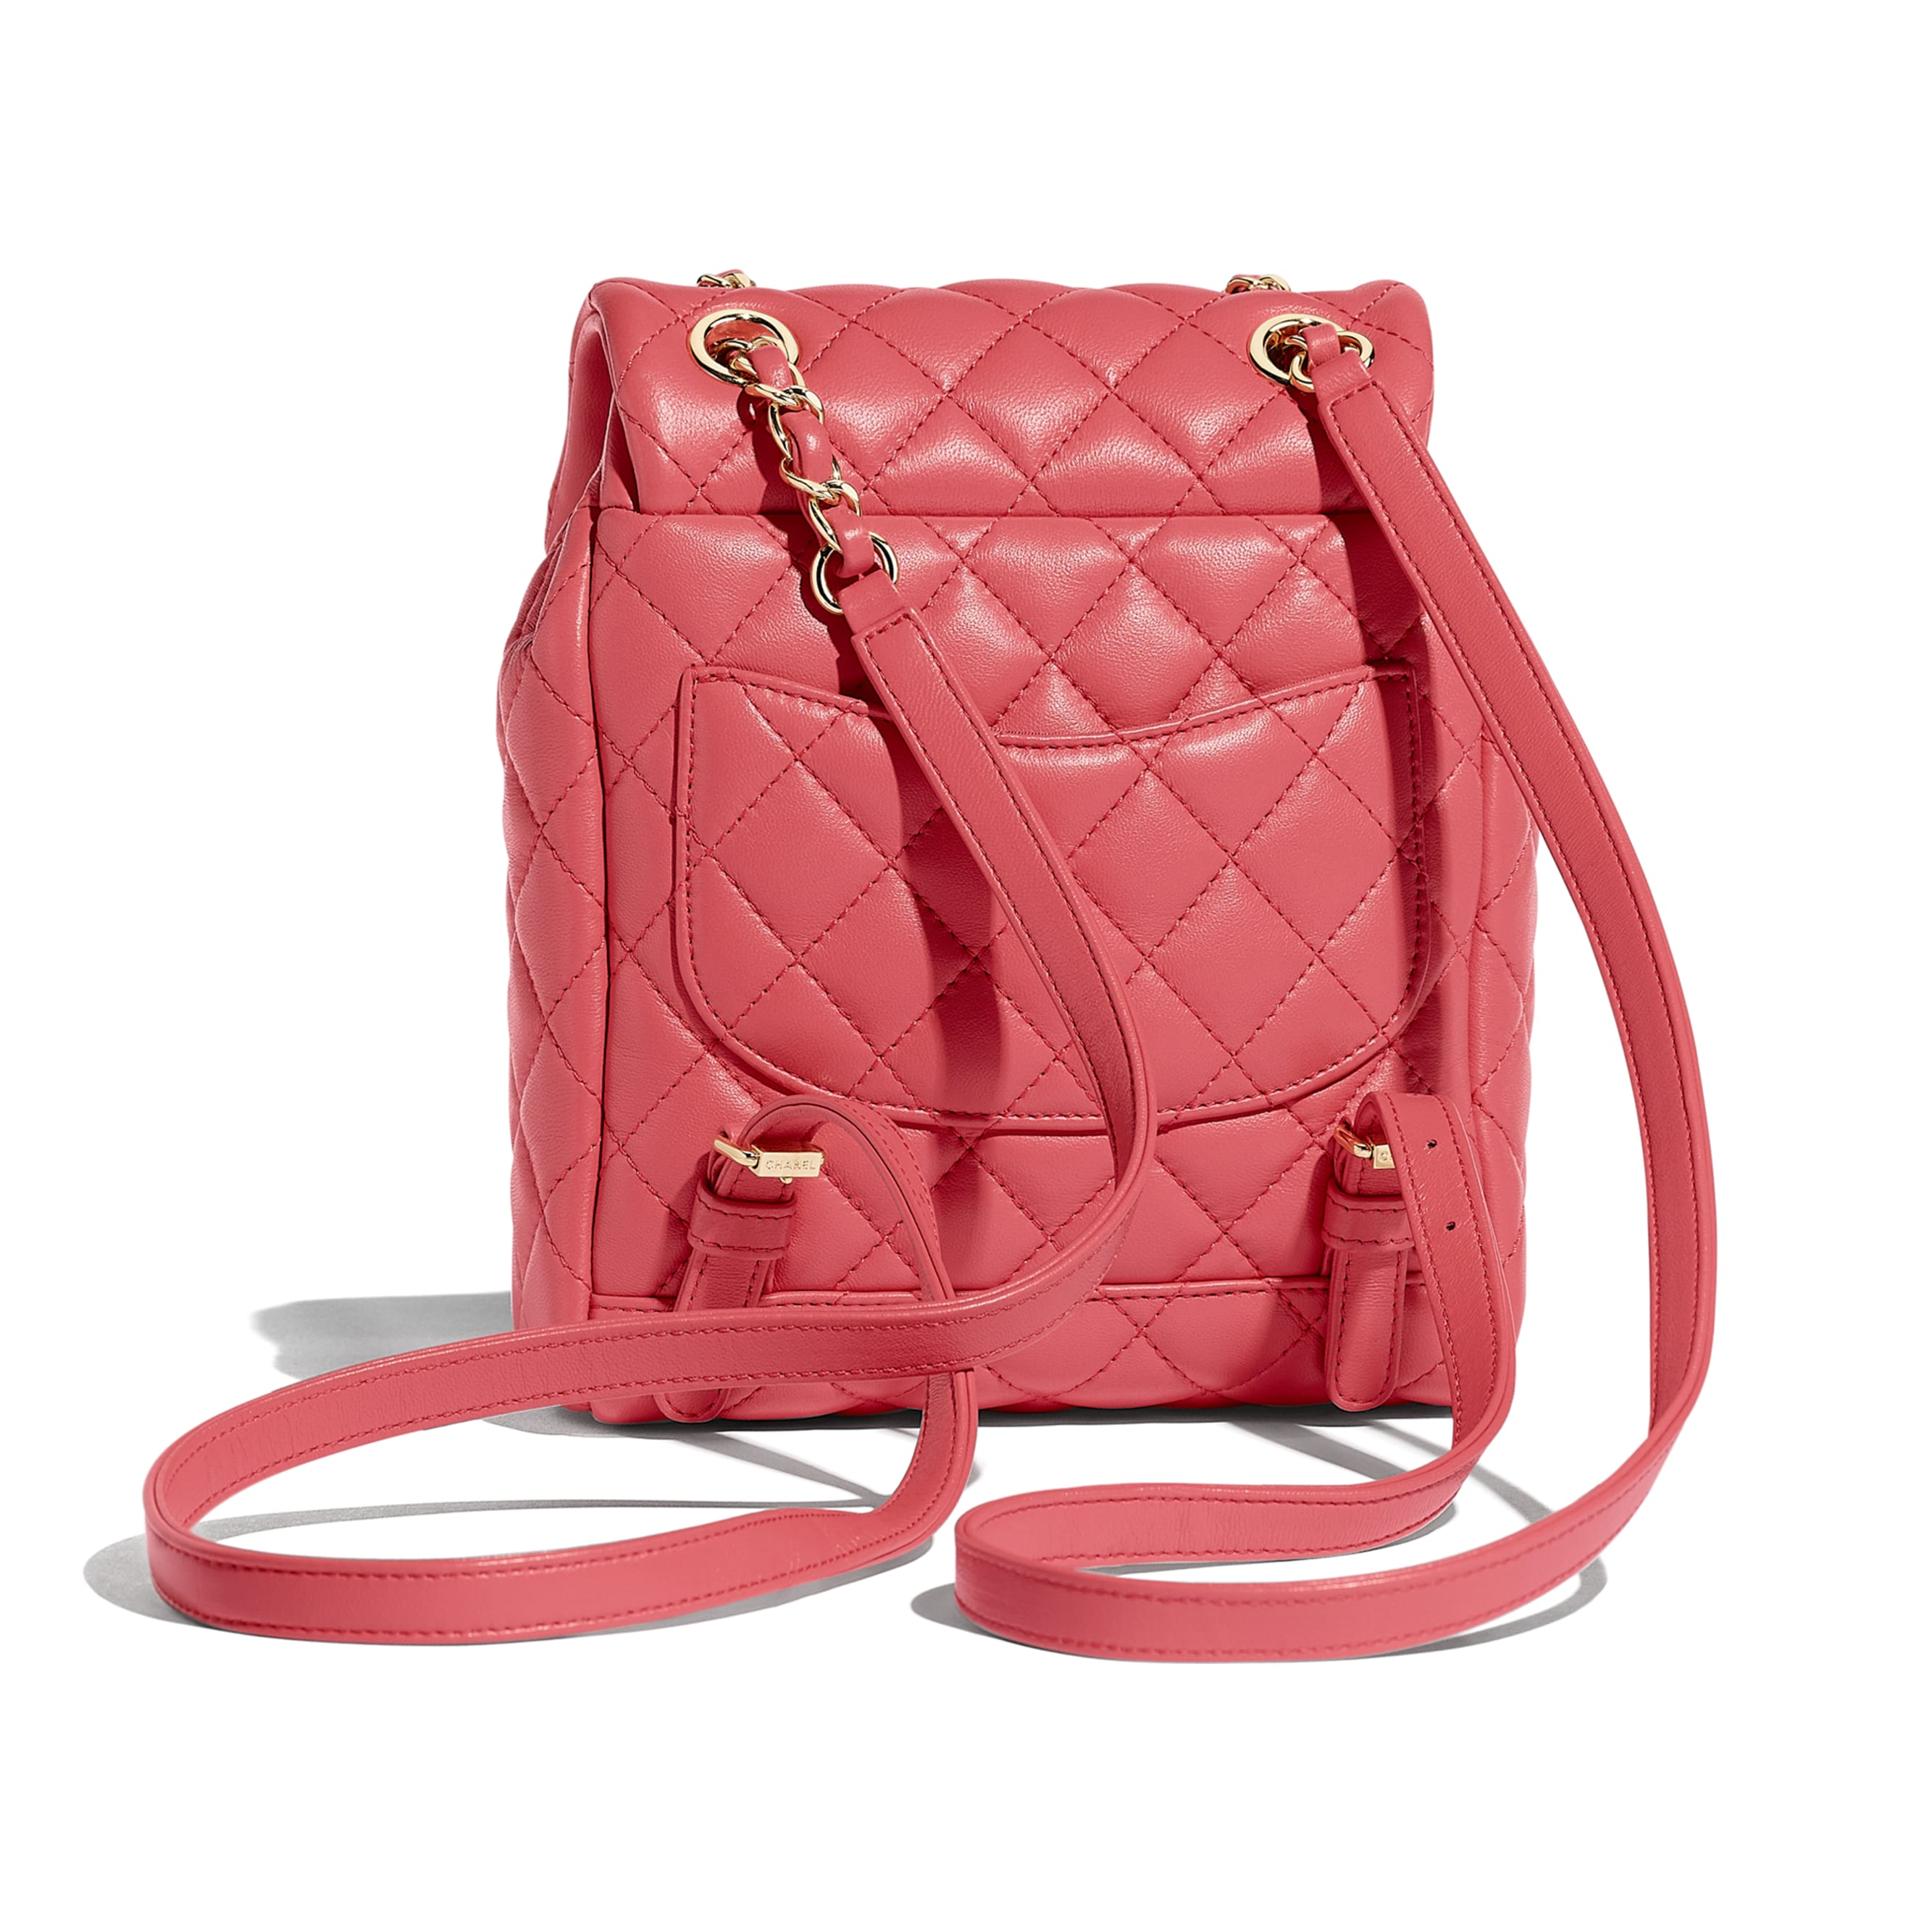 Backpack - Pink - Lambskin & Gold-Tone Metal - Alternative view - see standard sized version